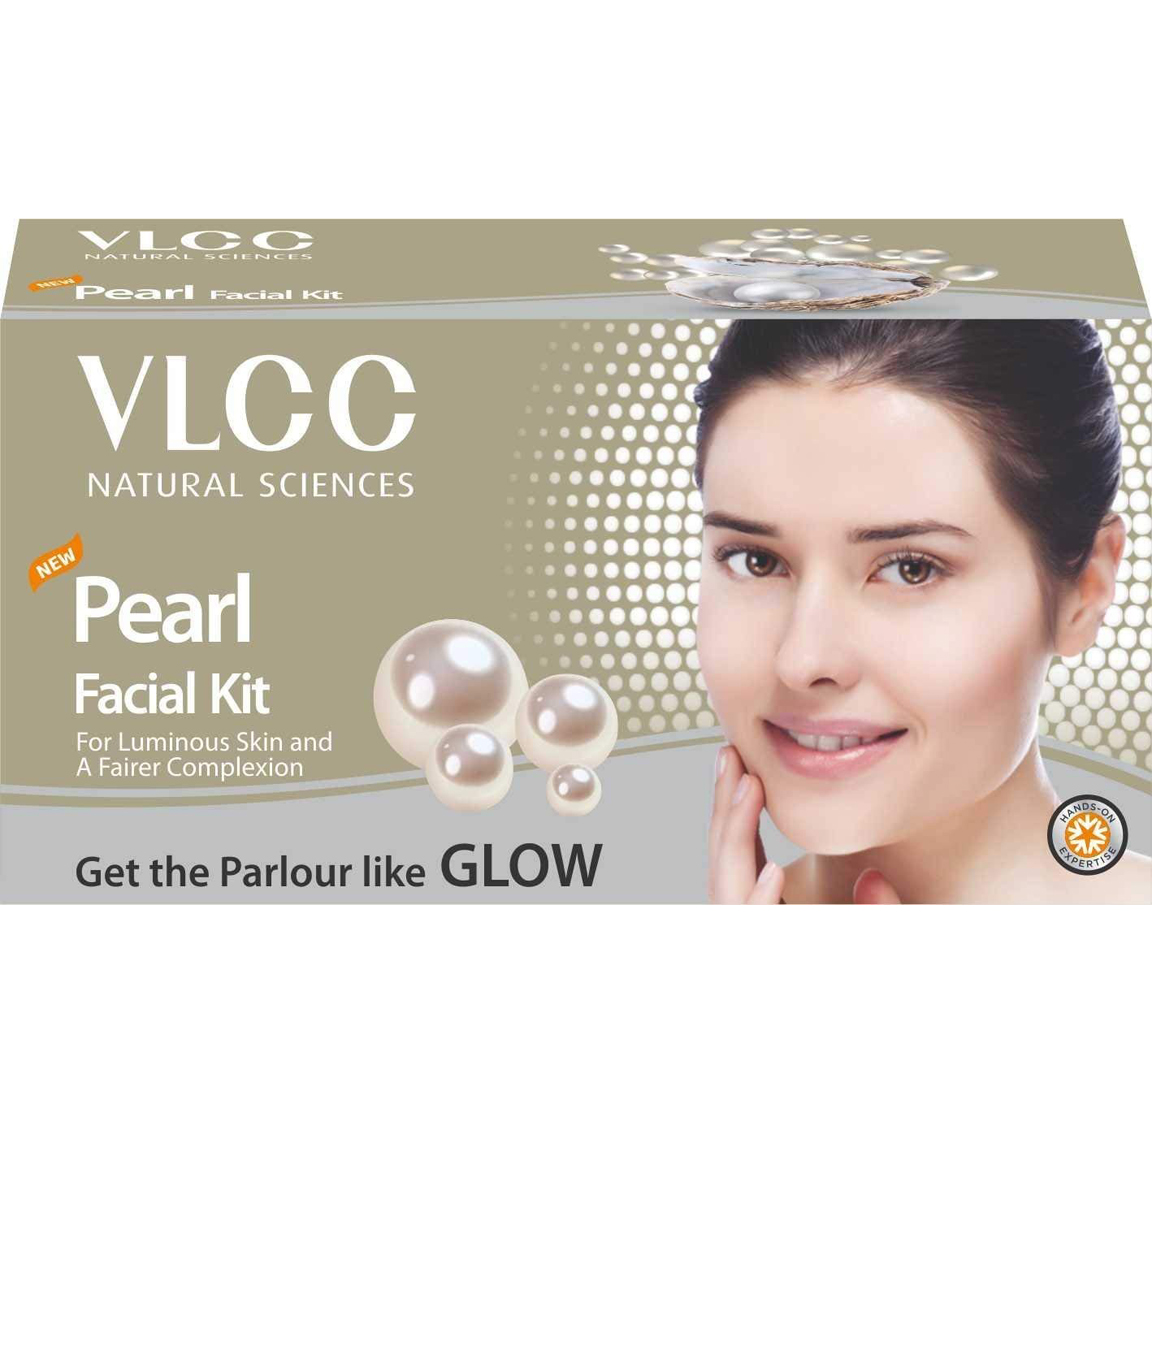 VLCC Natural Sciences Pearl Facial Kit 60g